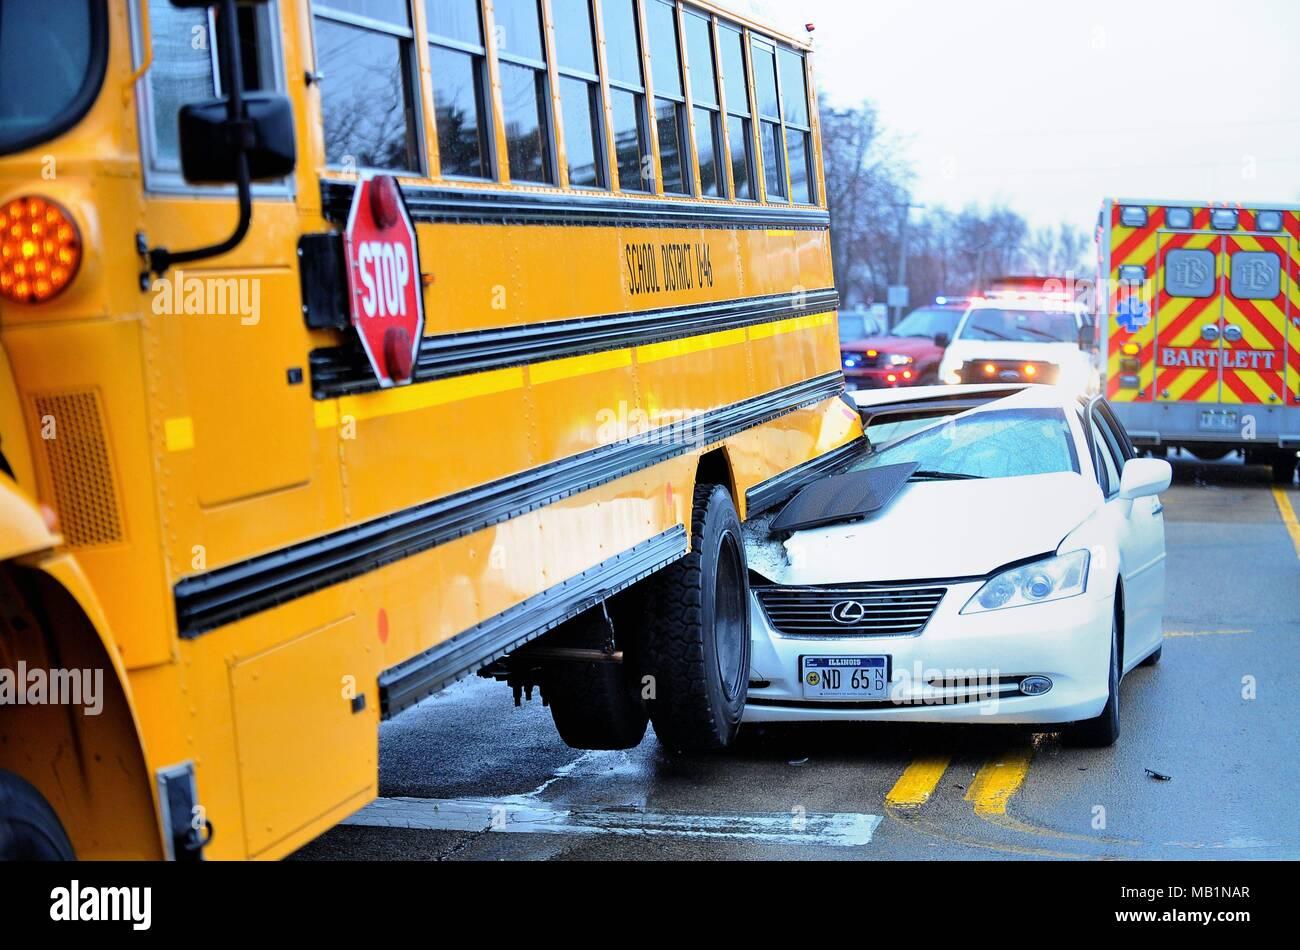 Bartlett, Illinois, USA. School bus was rear ended with sufficient force to lift the bus' reat wheels off the road. - Stock Image